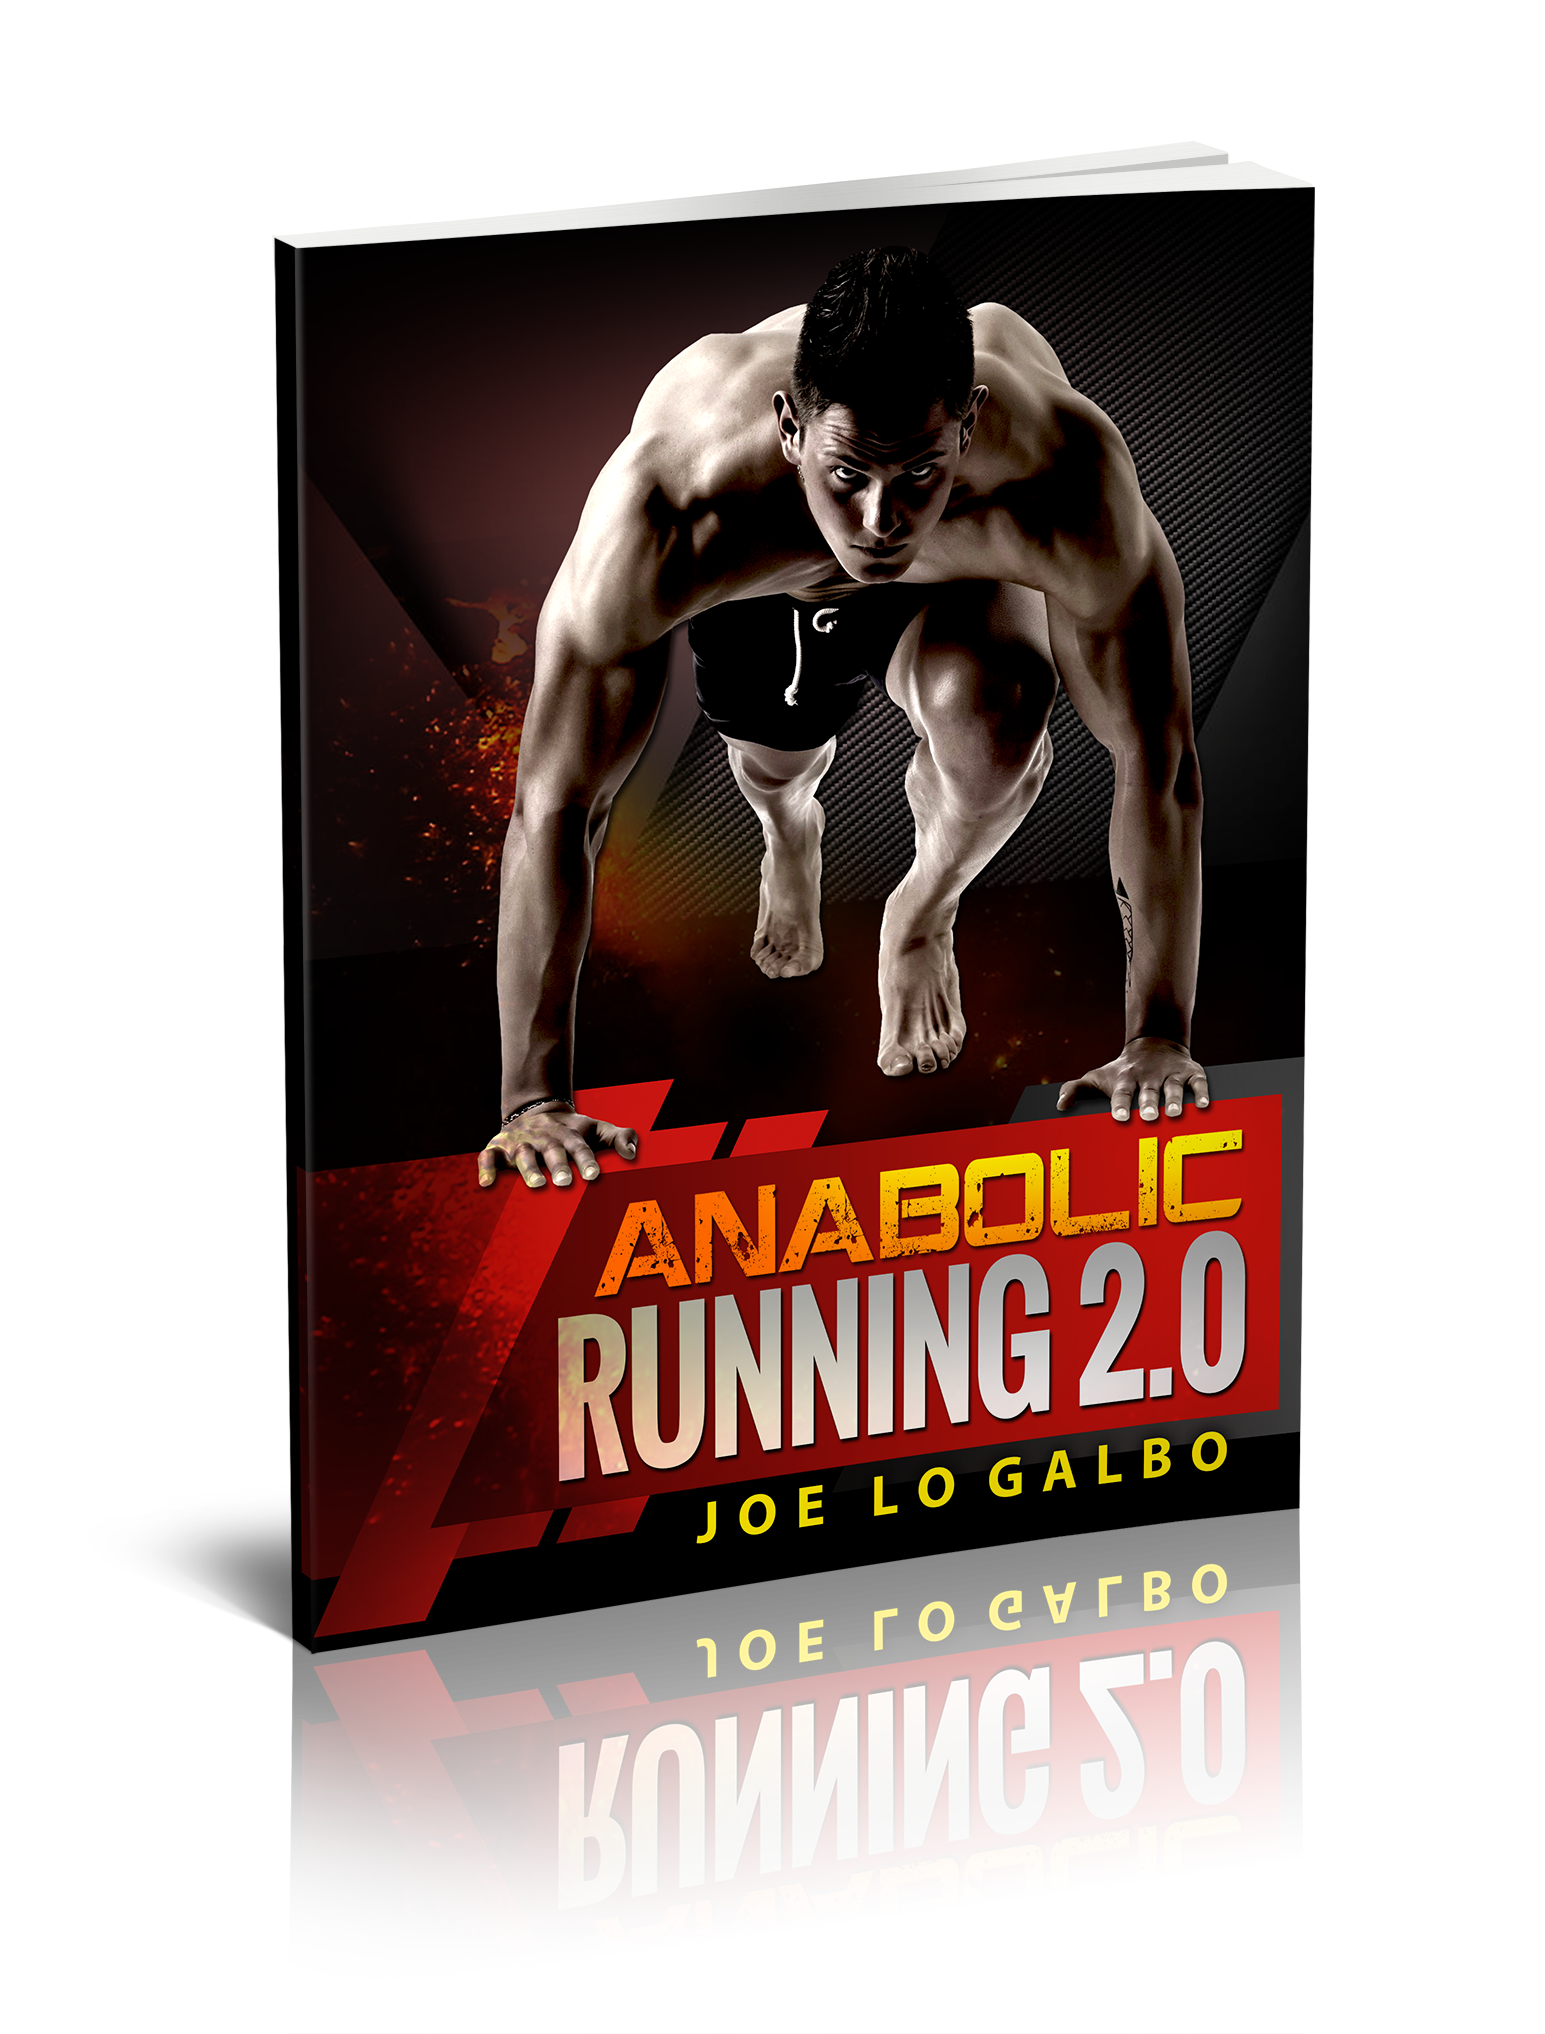 Anabolic Running Review 2.0